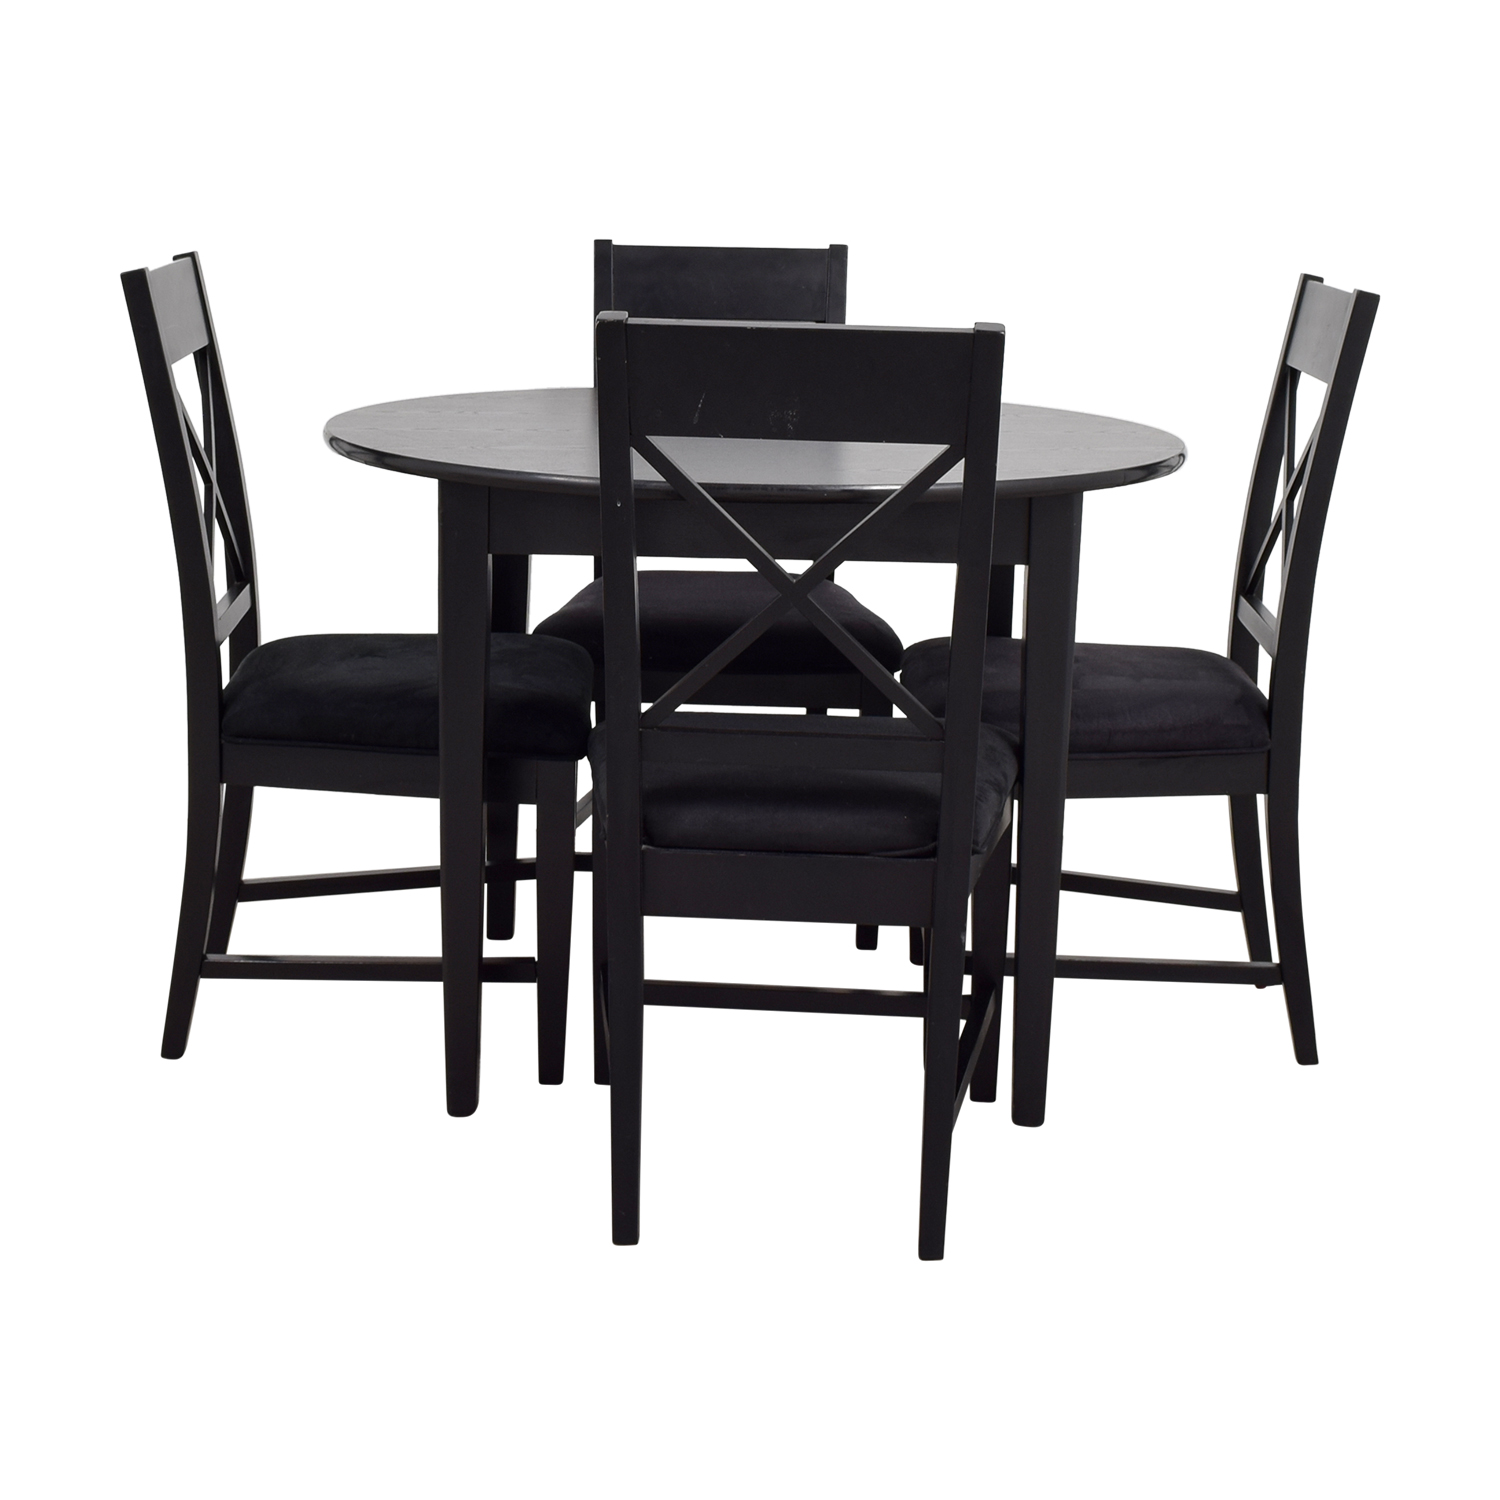 81 off round black wood dining set tables for Black and white dining set